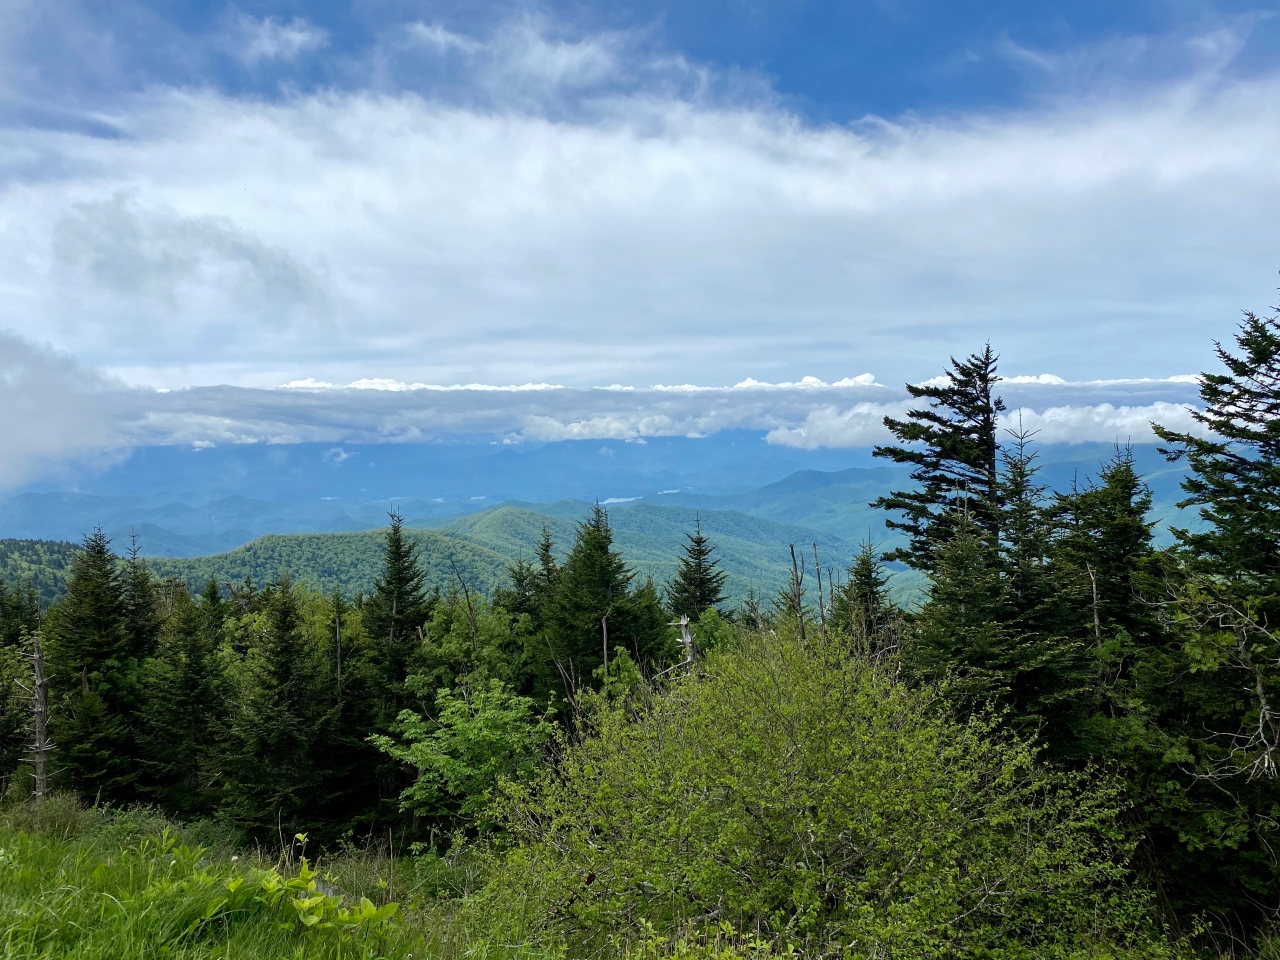 A hiking paradise close to home, the Great Smoky Mountains